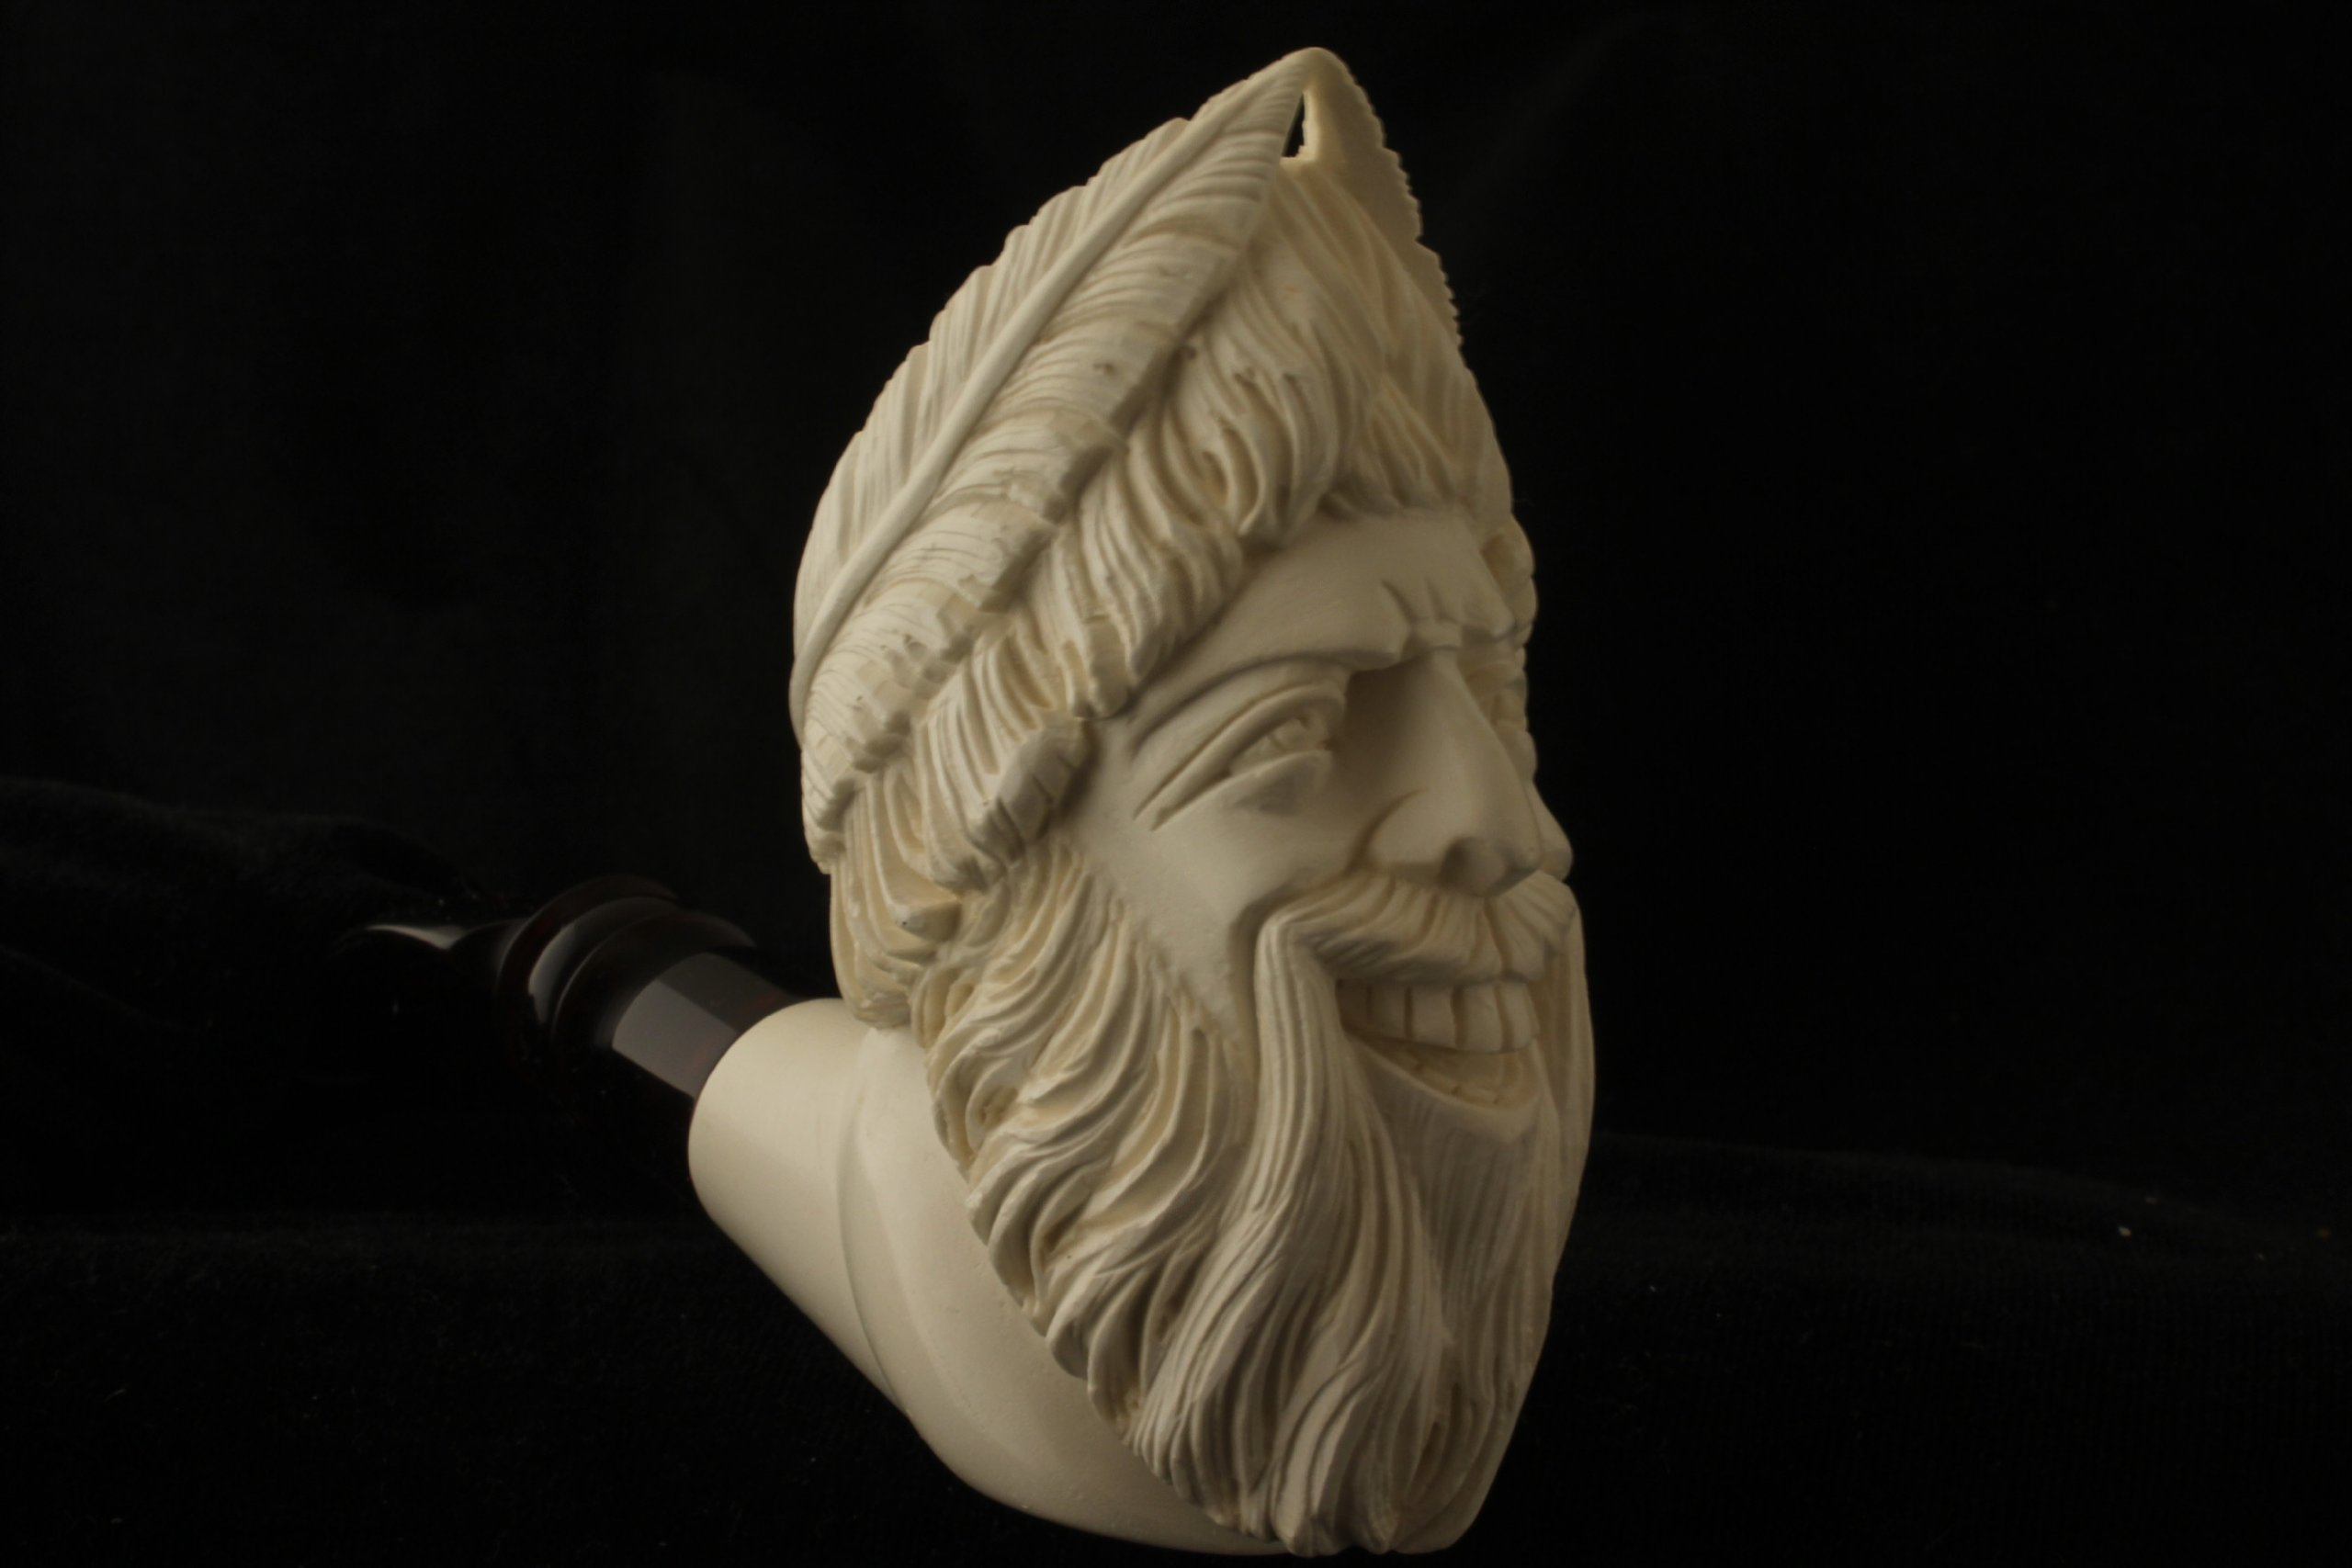 ZEUS - Meerschaum Pipe - Hand Carved from the Best Quality BLOCK Meerschaum - Comes in a CASE - NEW